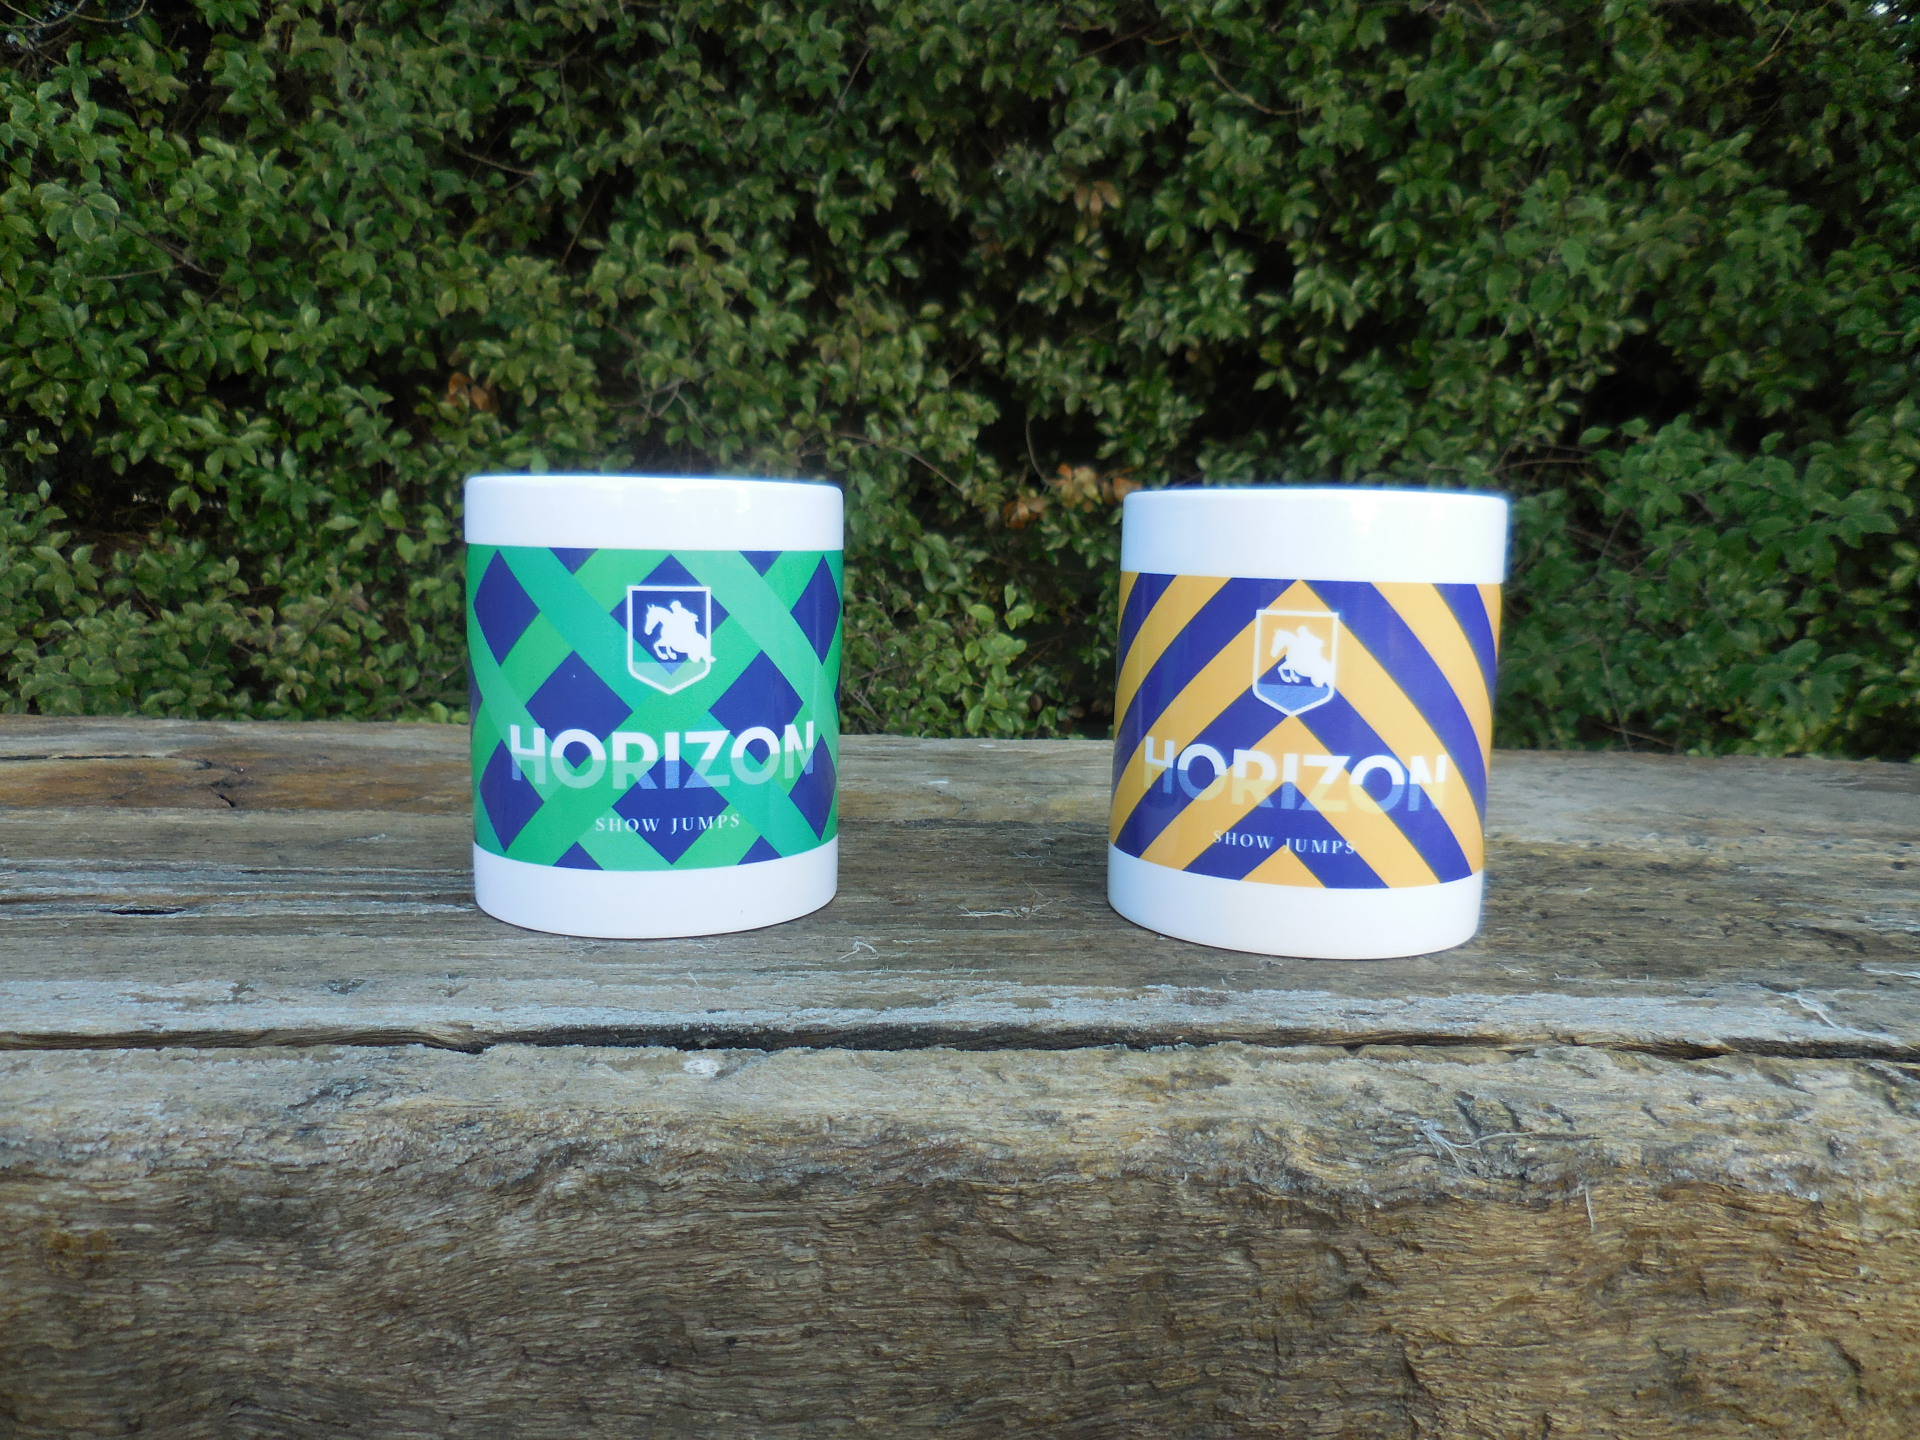 Horizon Show Jump Mugs